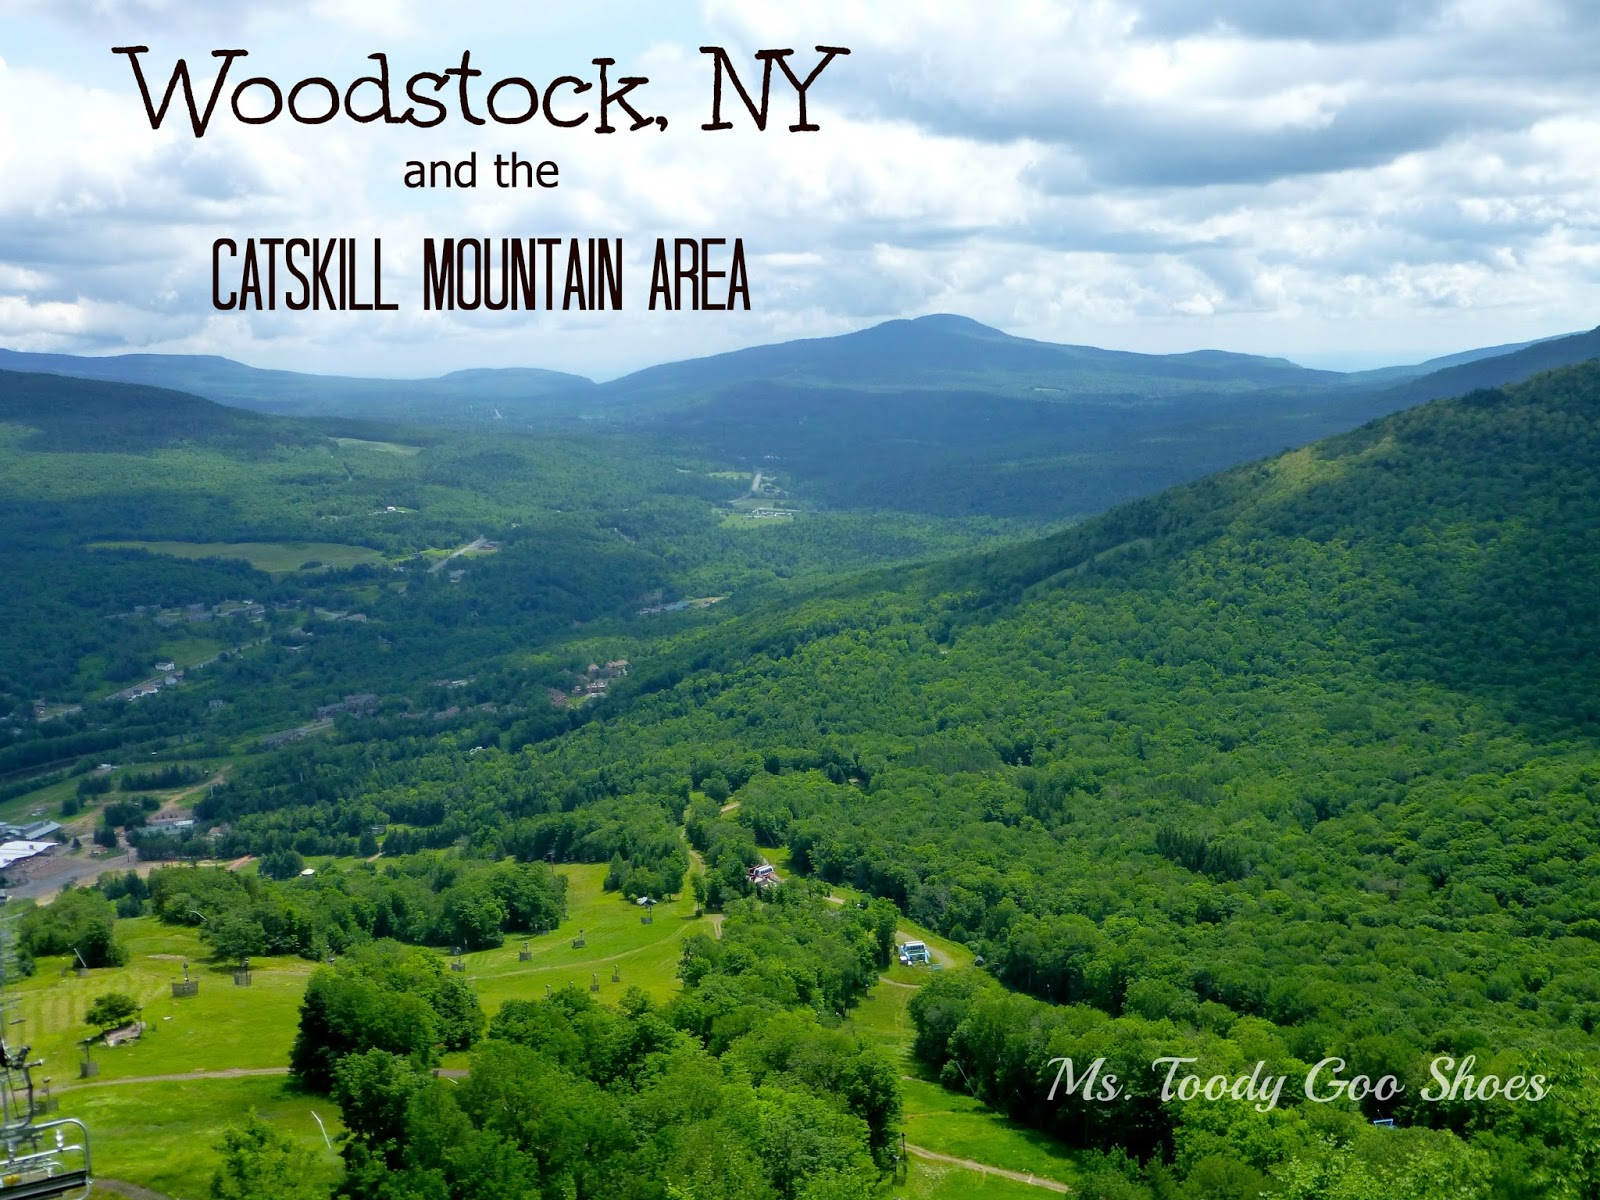 Cucina Woodstock Ny Hours Ms Toody Goo Shoes Woodstock Ny And The Catskill Mountains A Tour